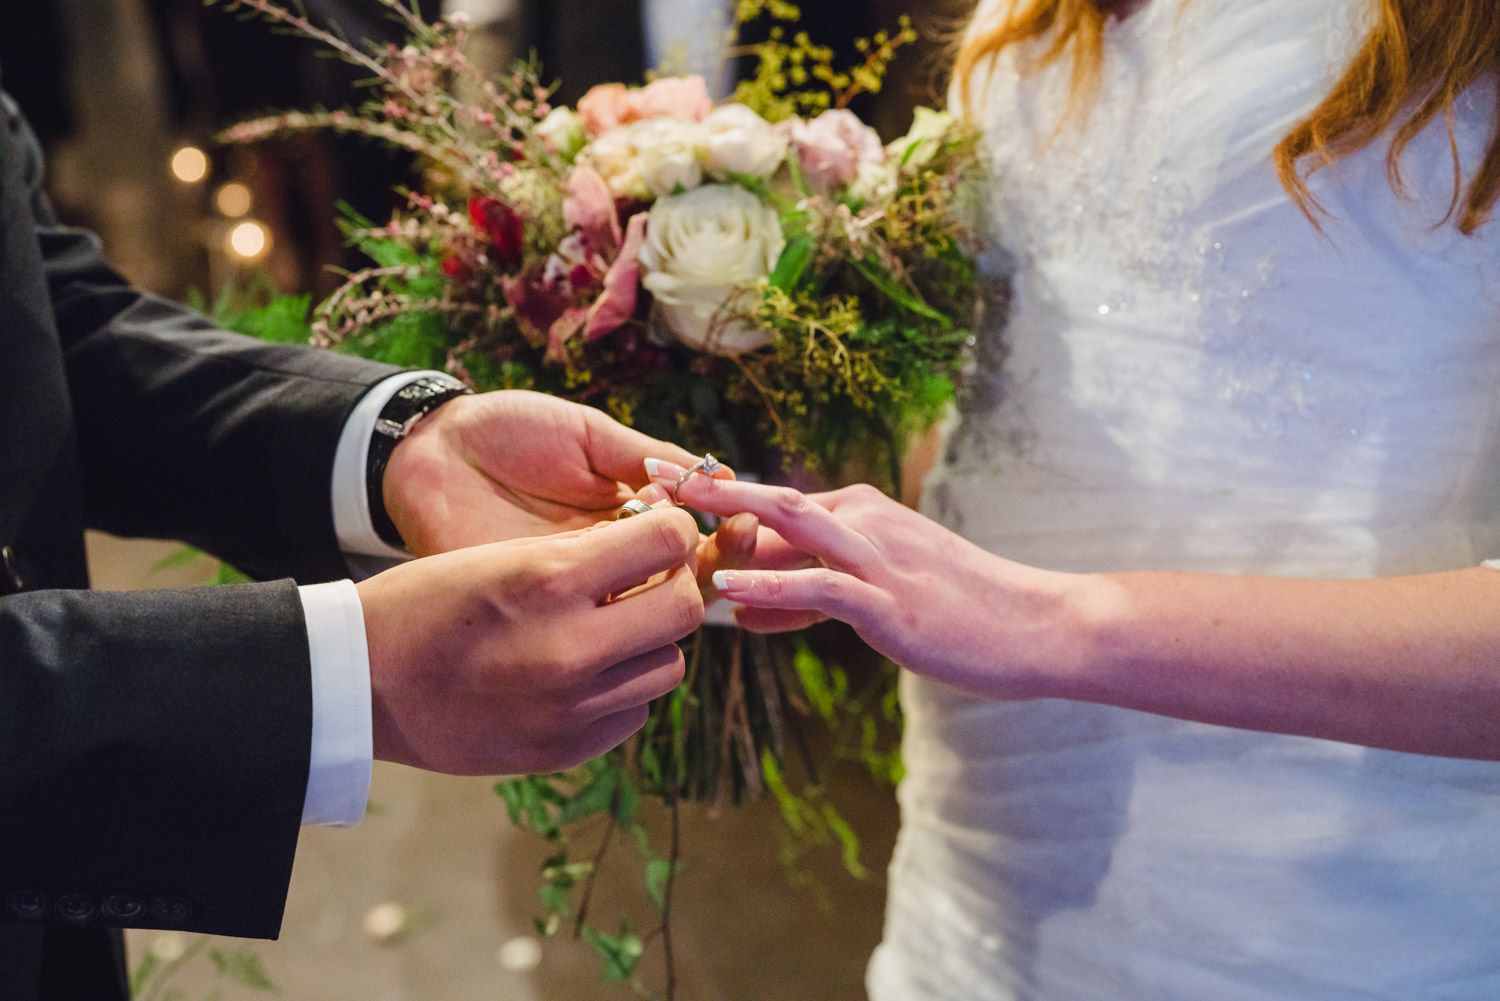 Pierpont Place wedding exchanging rings during ceremony photo